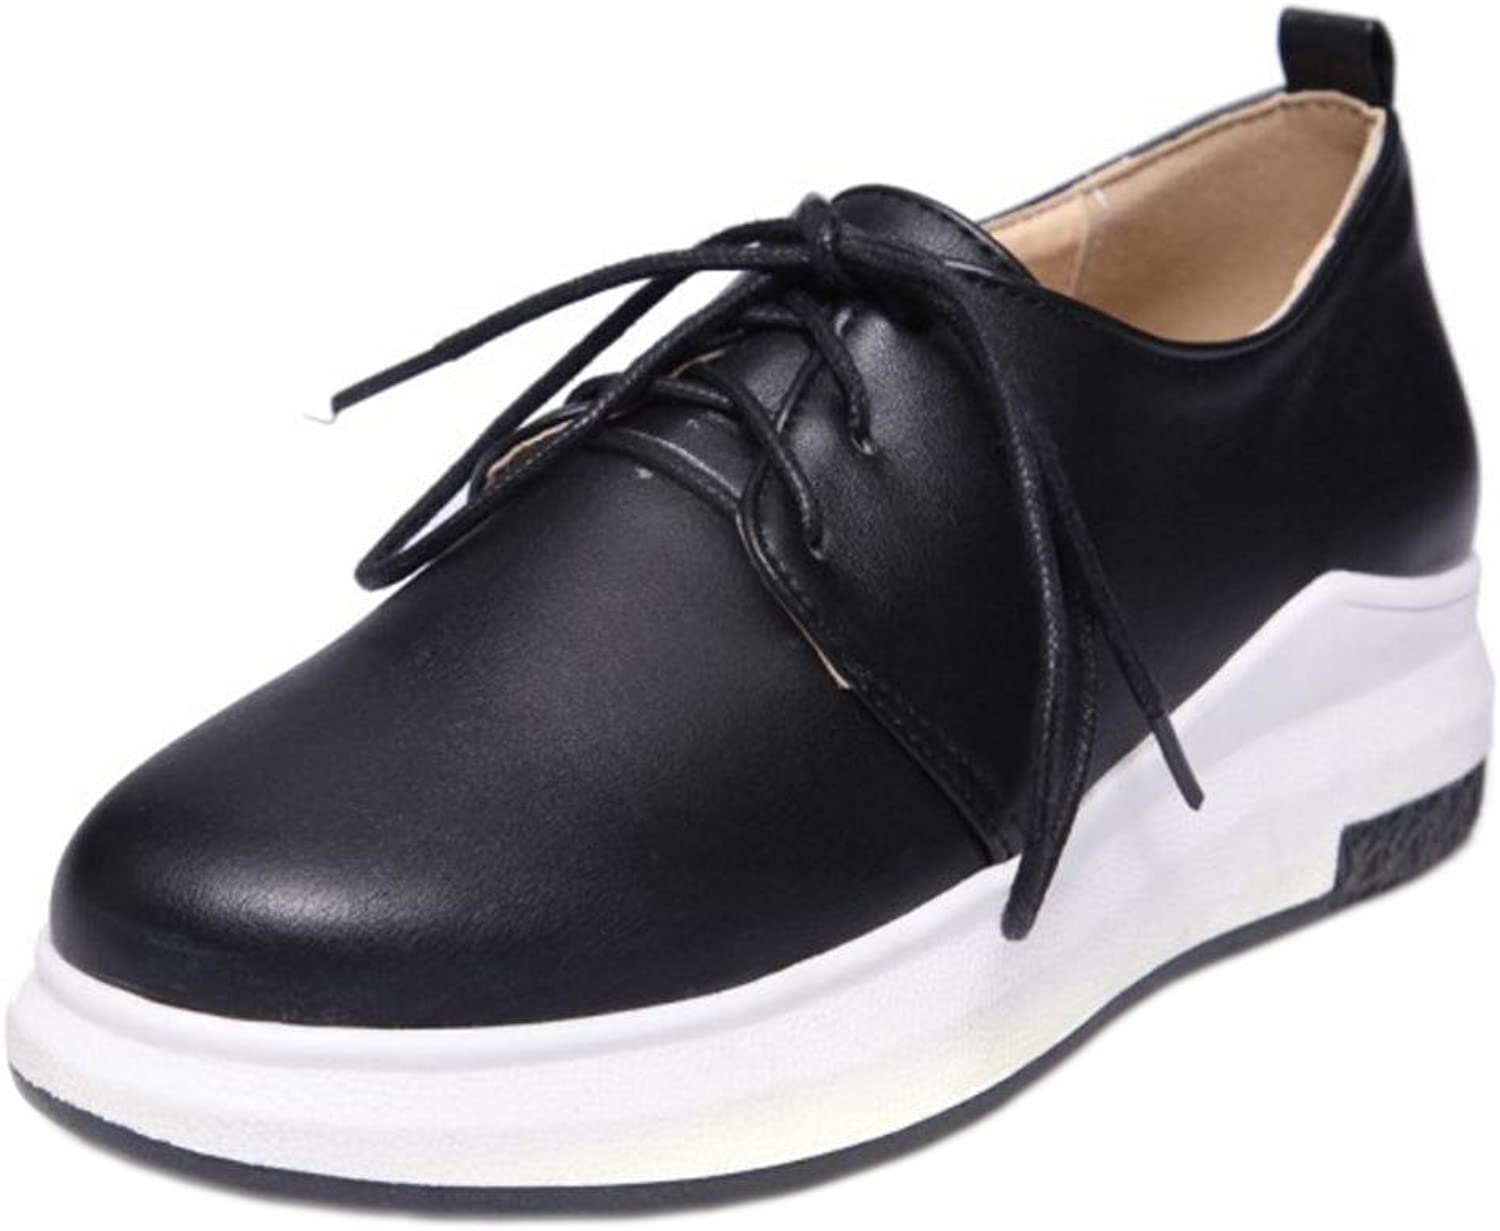 AicciAizzi Women Lace Up shoes